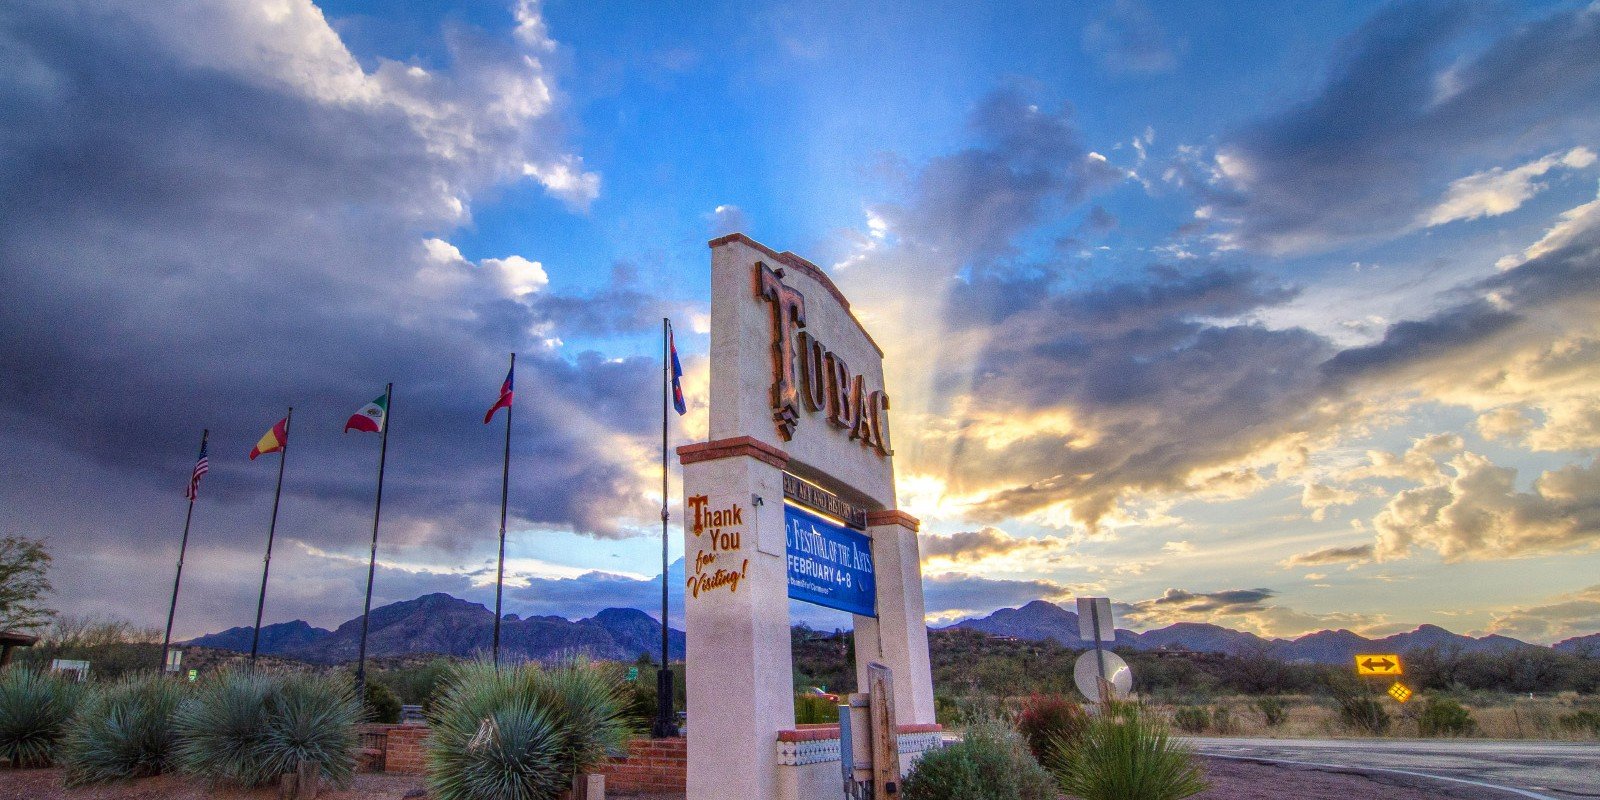 Vibrant rays of the setting sun emerge from behind the clouds. In the foreground, a sign welcoming people to the village of Tubac, Arizona.